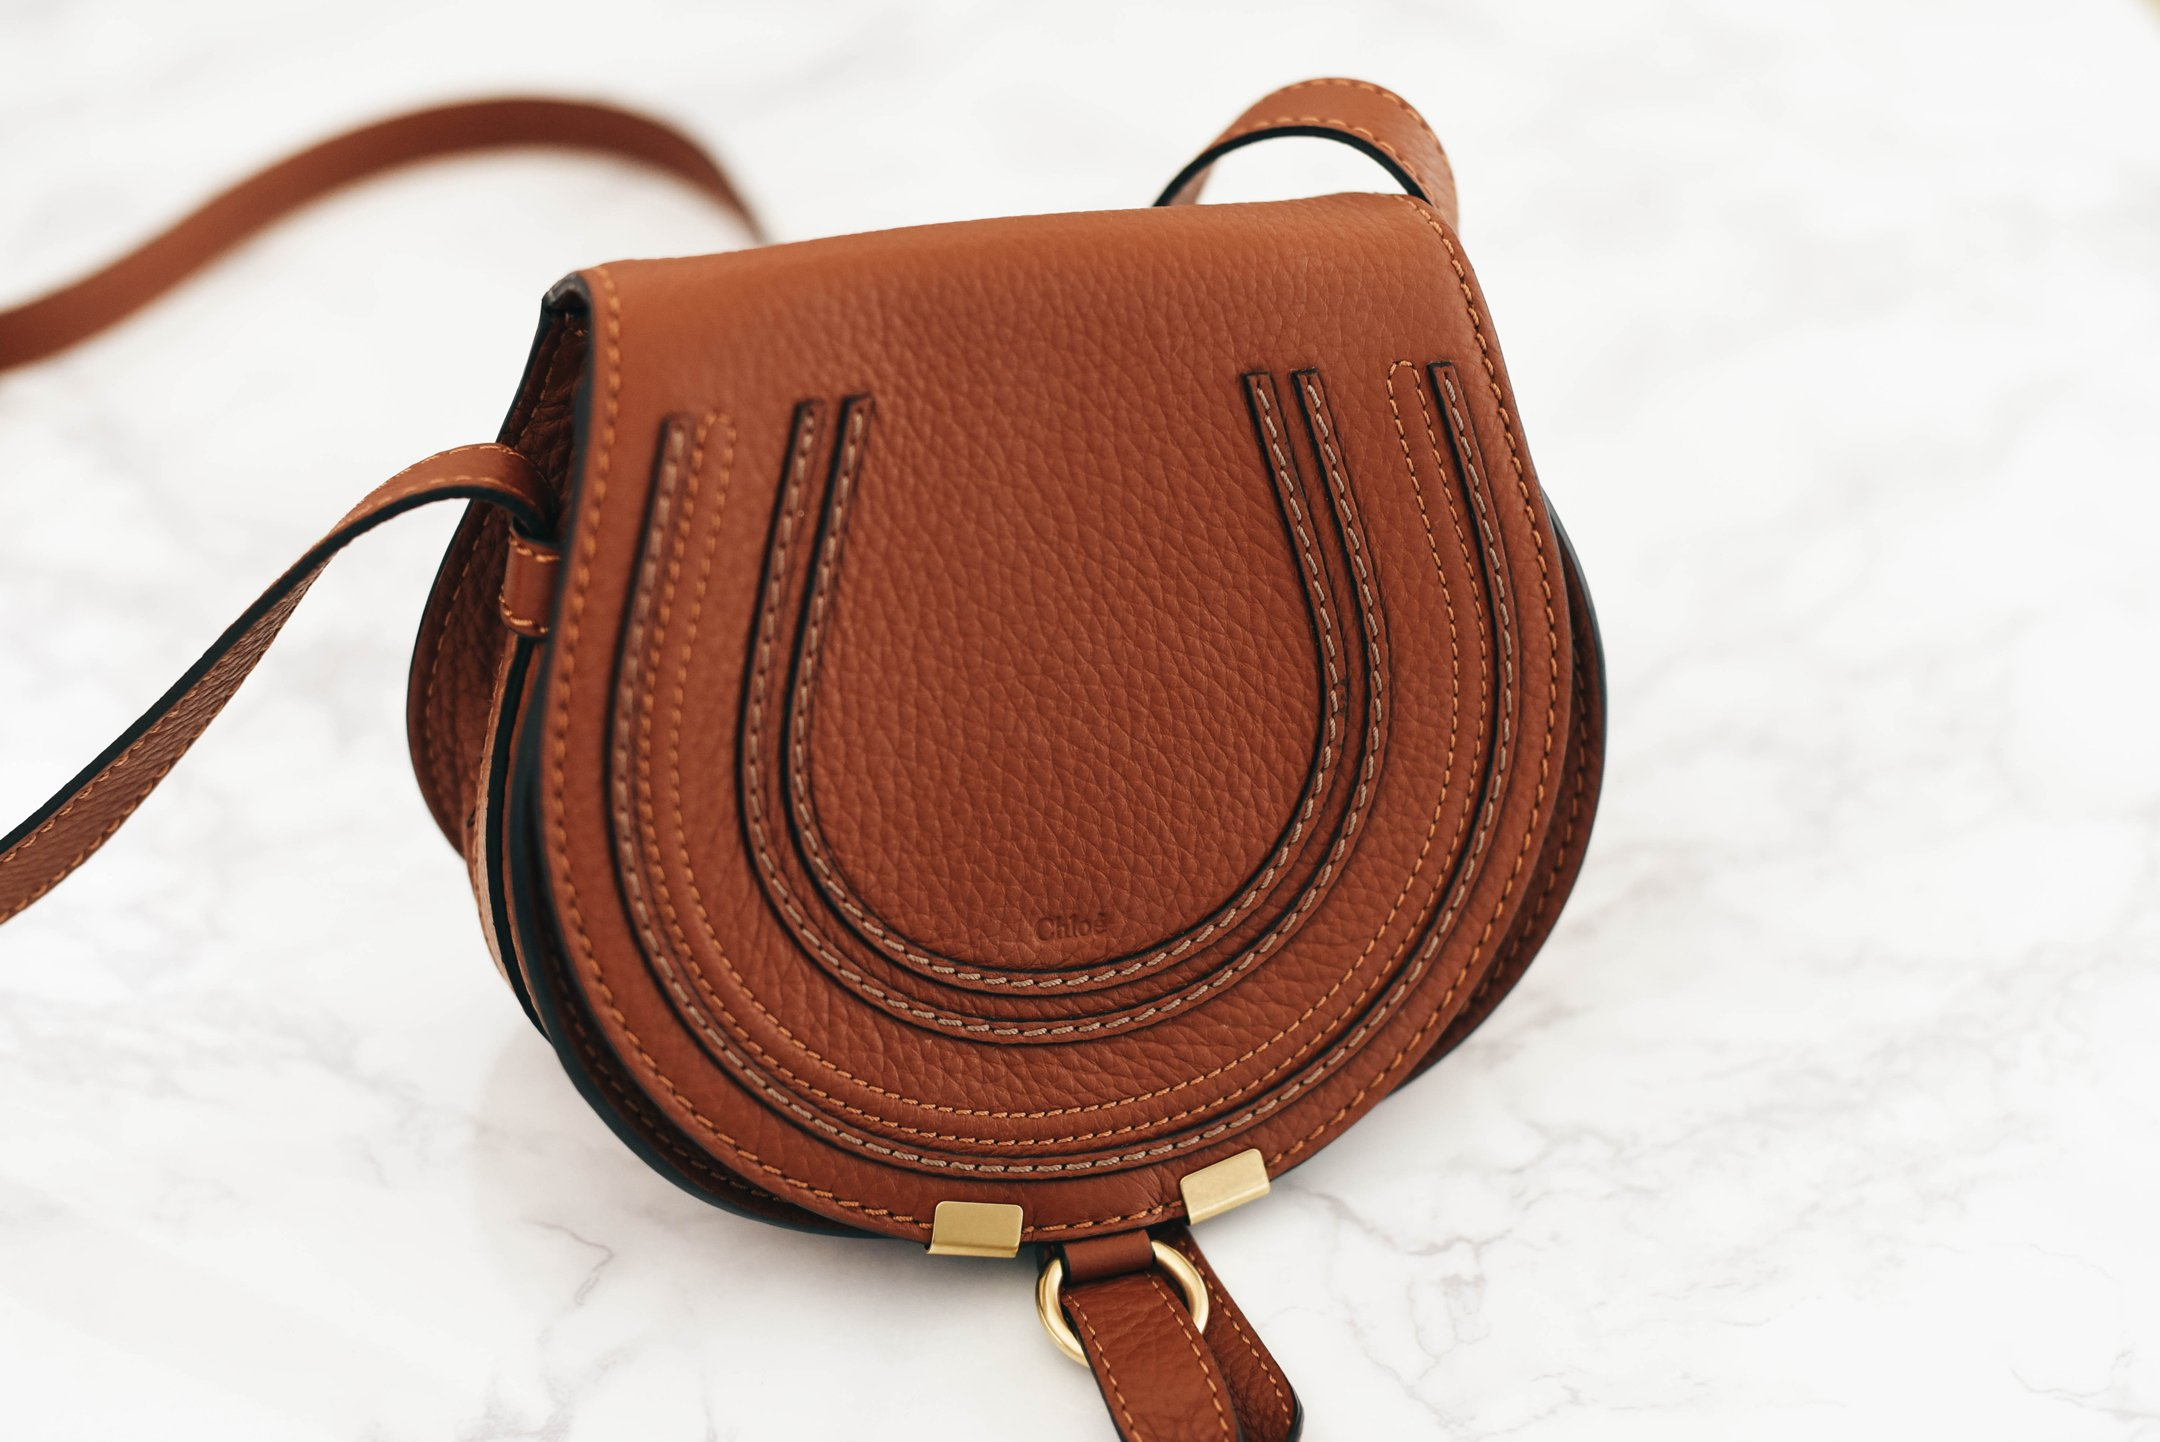 5a8de72d46 What's in my Bag + Chloé 'Small Marcie' Leather Crossbody Bag Review -  Crystalin Marie